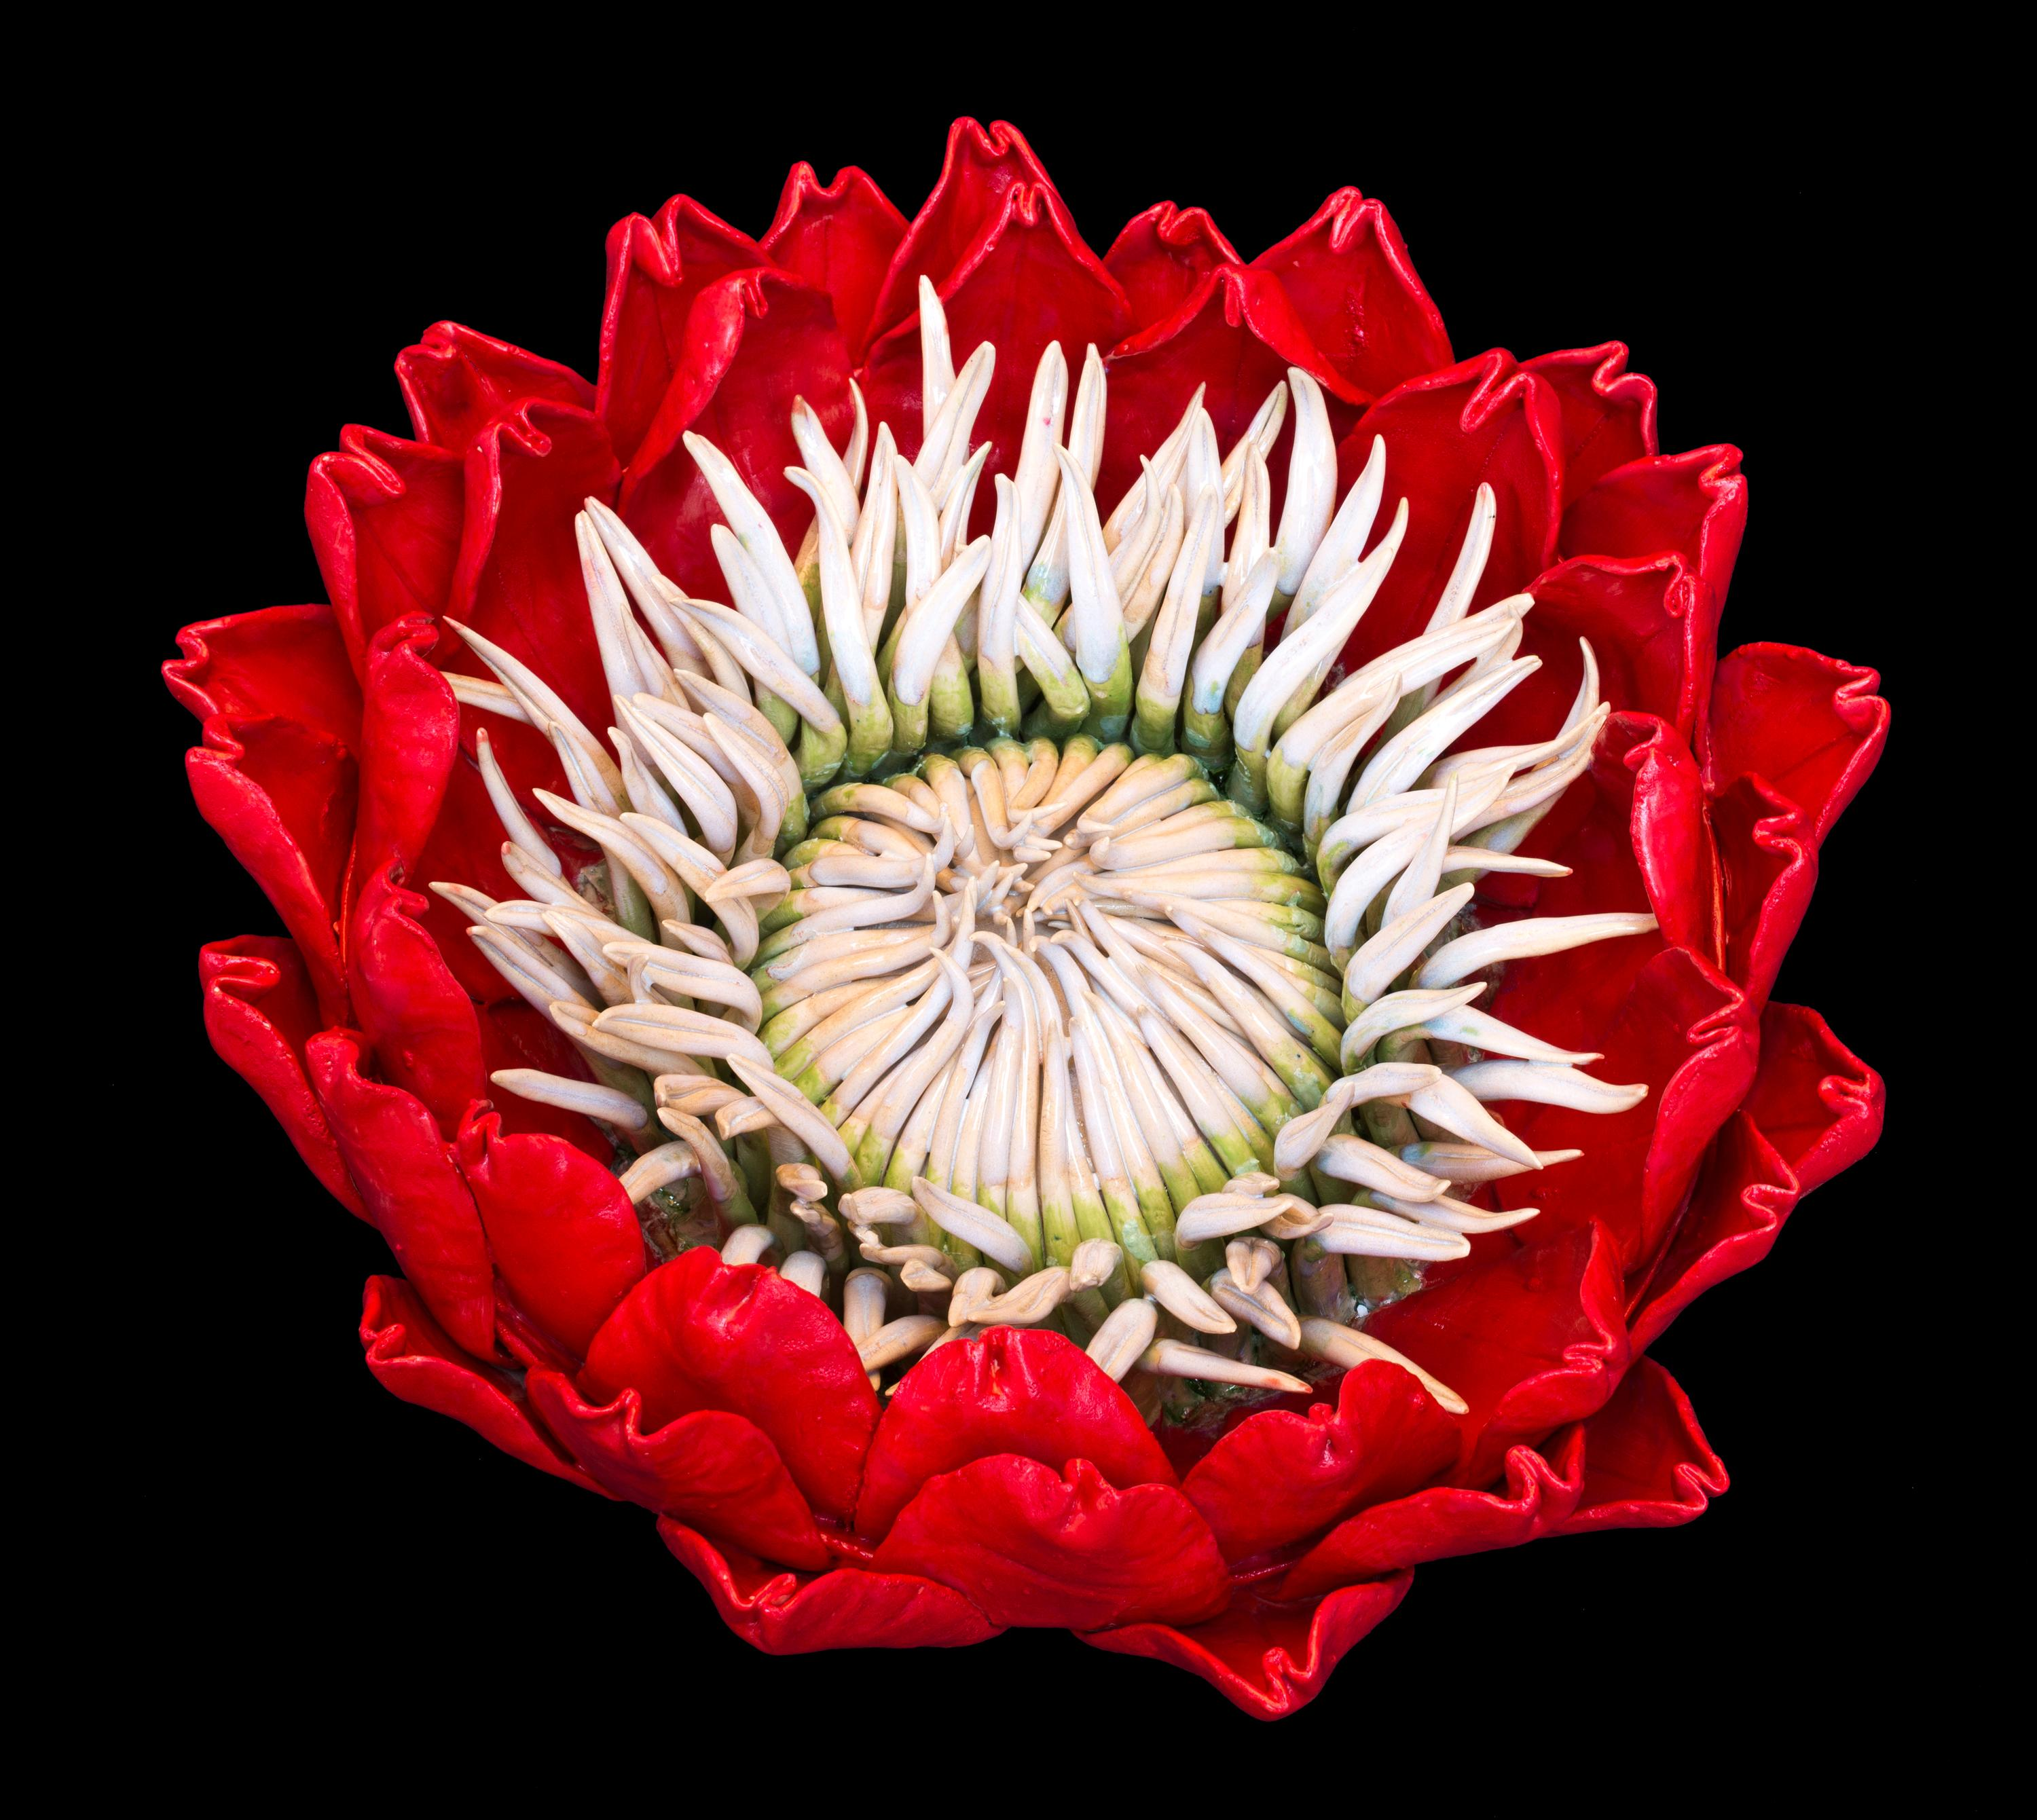 Red Protea - the secret worlds inside these flowers, red, white, green, yellow